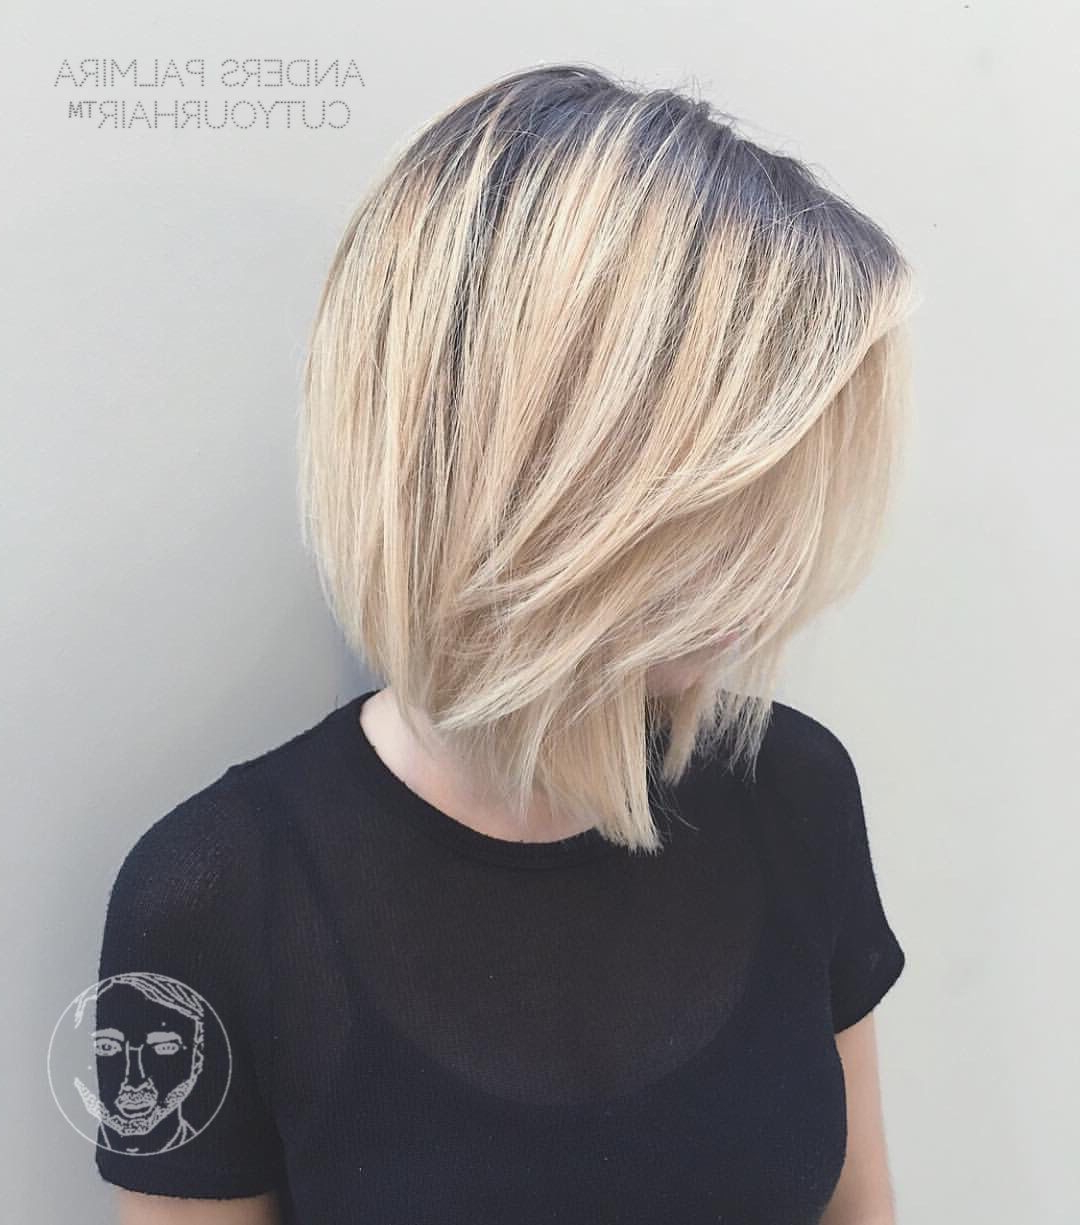 Aveda Wavy Long Blonde Bob Short Hair Beach Wave Medium Ideas Lob With Regard To Nape Length Curly Balayage Bob Hairstyles (View 16 of 20)